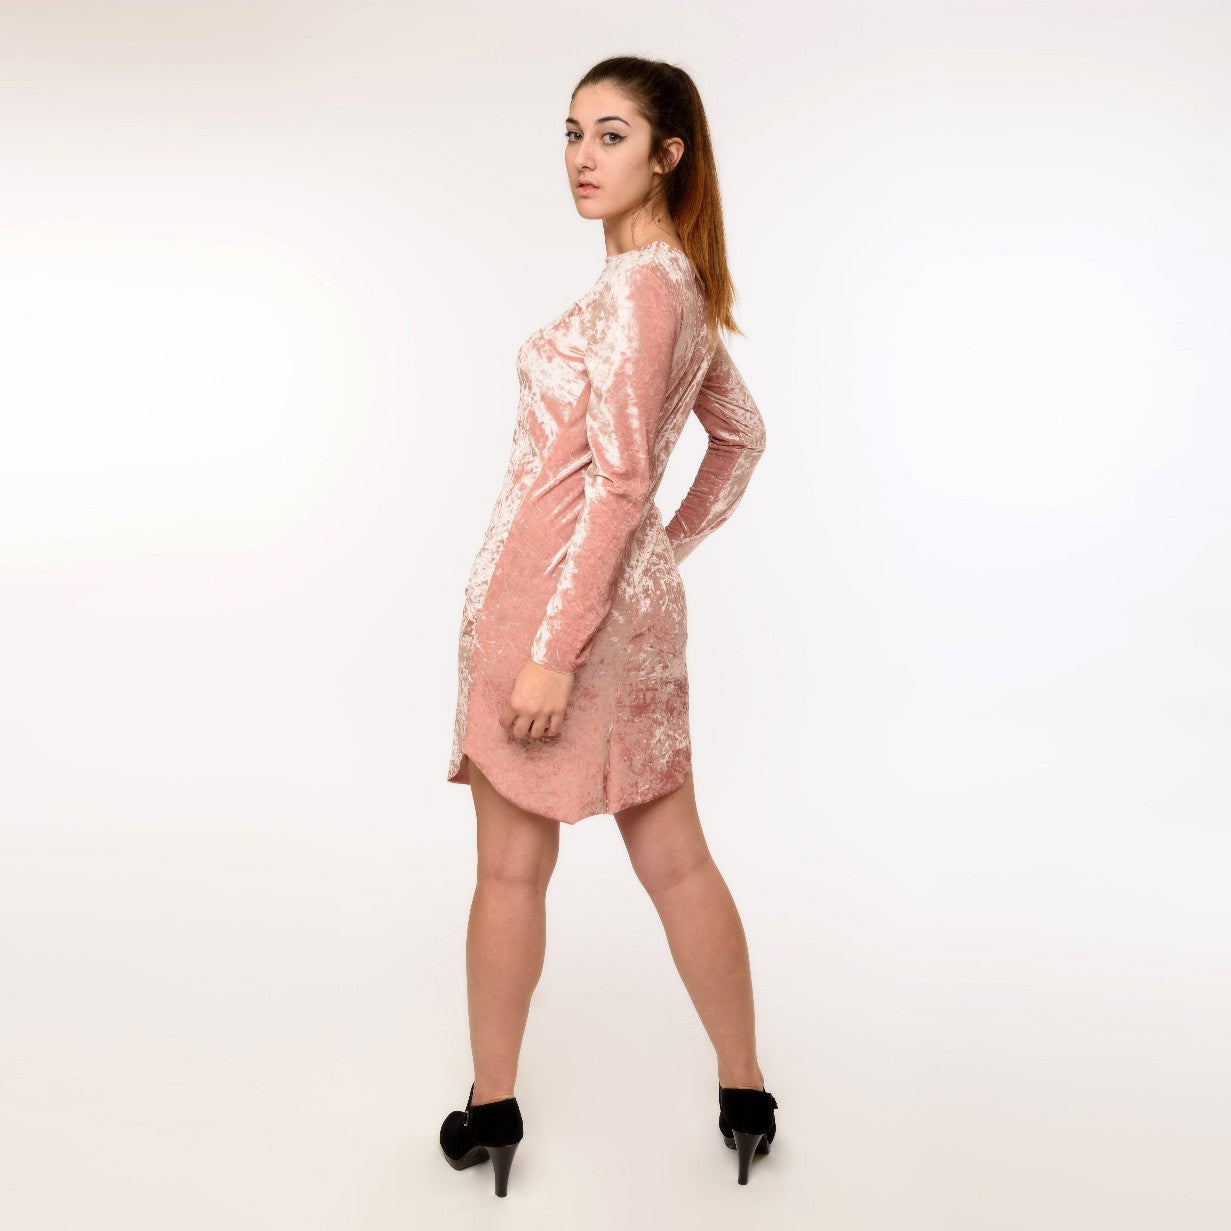 Very soft and touchable crushed velvet dress, with long sleeves. A casual outfit that stands out!